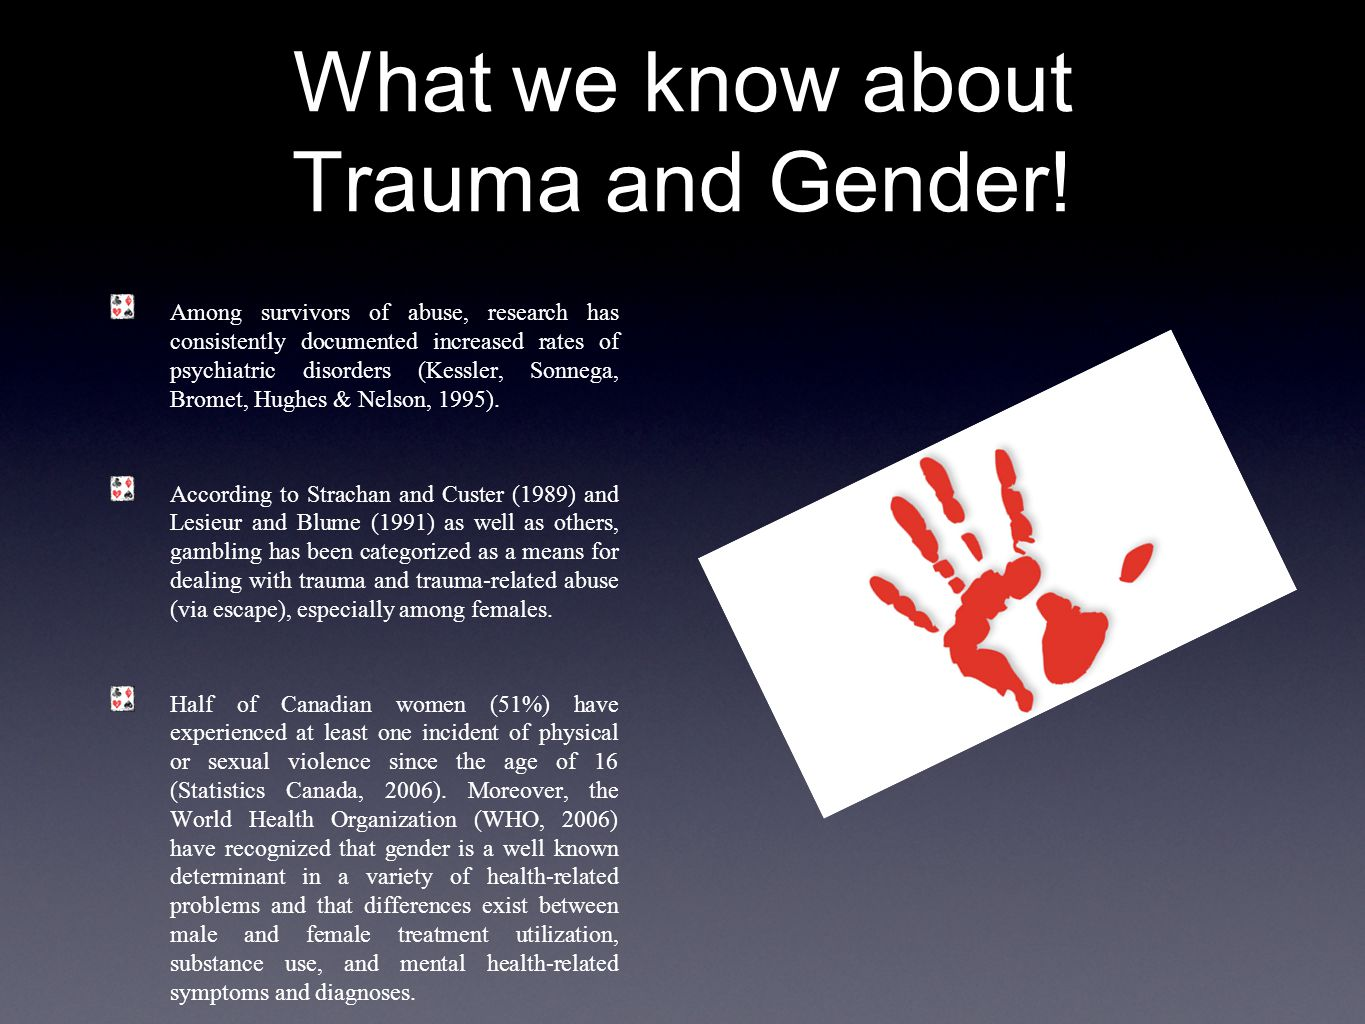 What we know about Trauma and Gender.